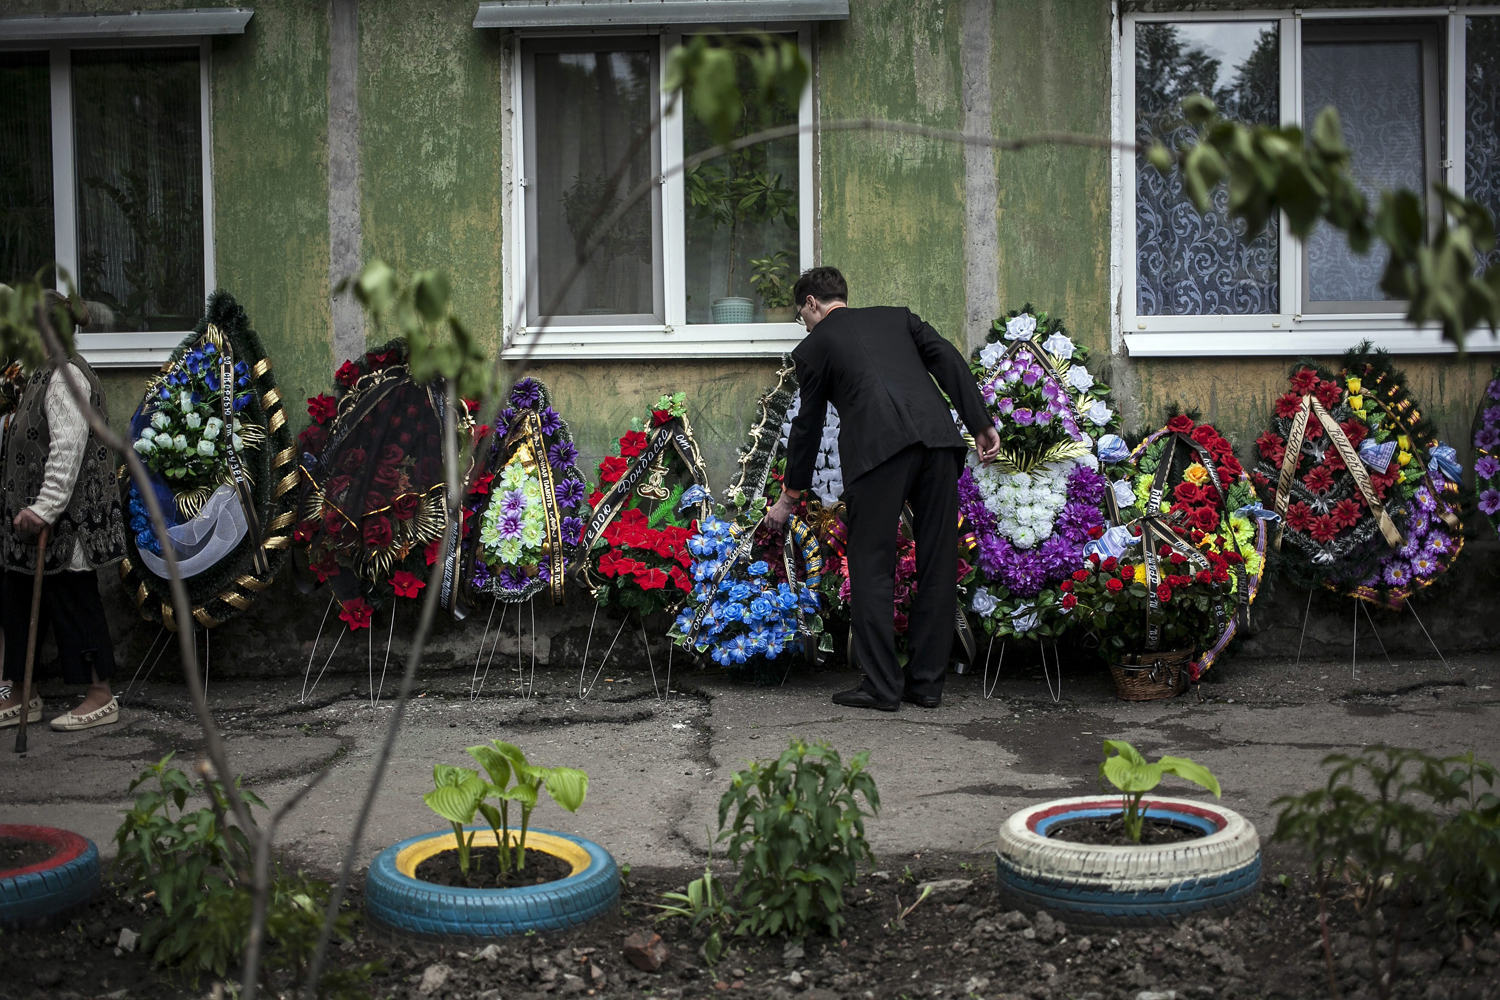 May 13, 2014. A man places flowers on the wall of Hyudych Vadim Yurievich's family home during his funeral, in the eastern Ukranian town of Krasnoarmisk.